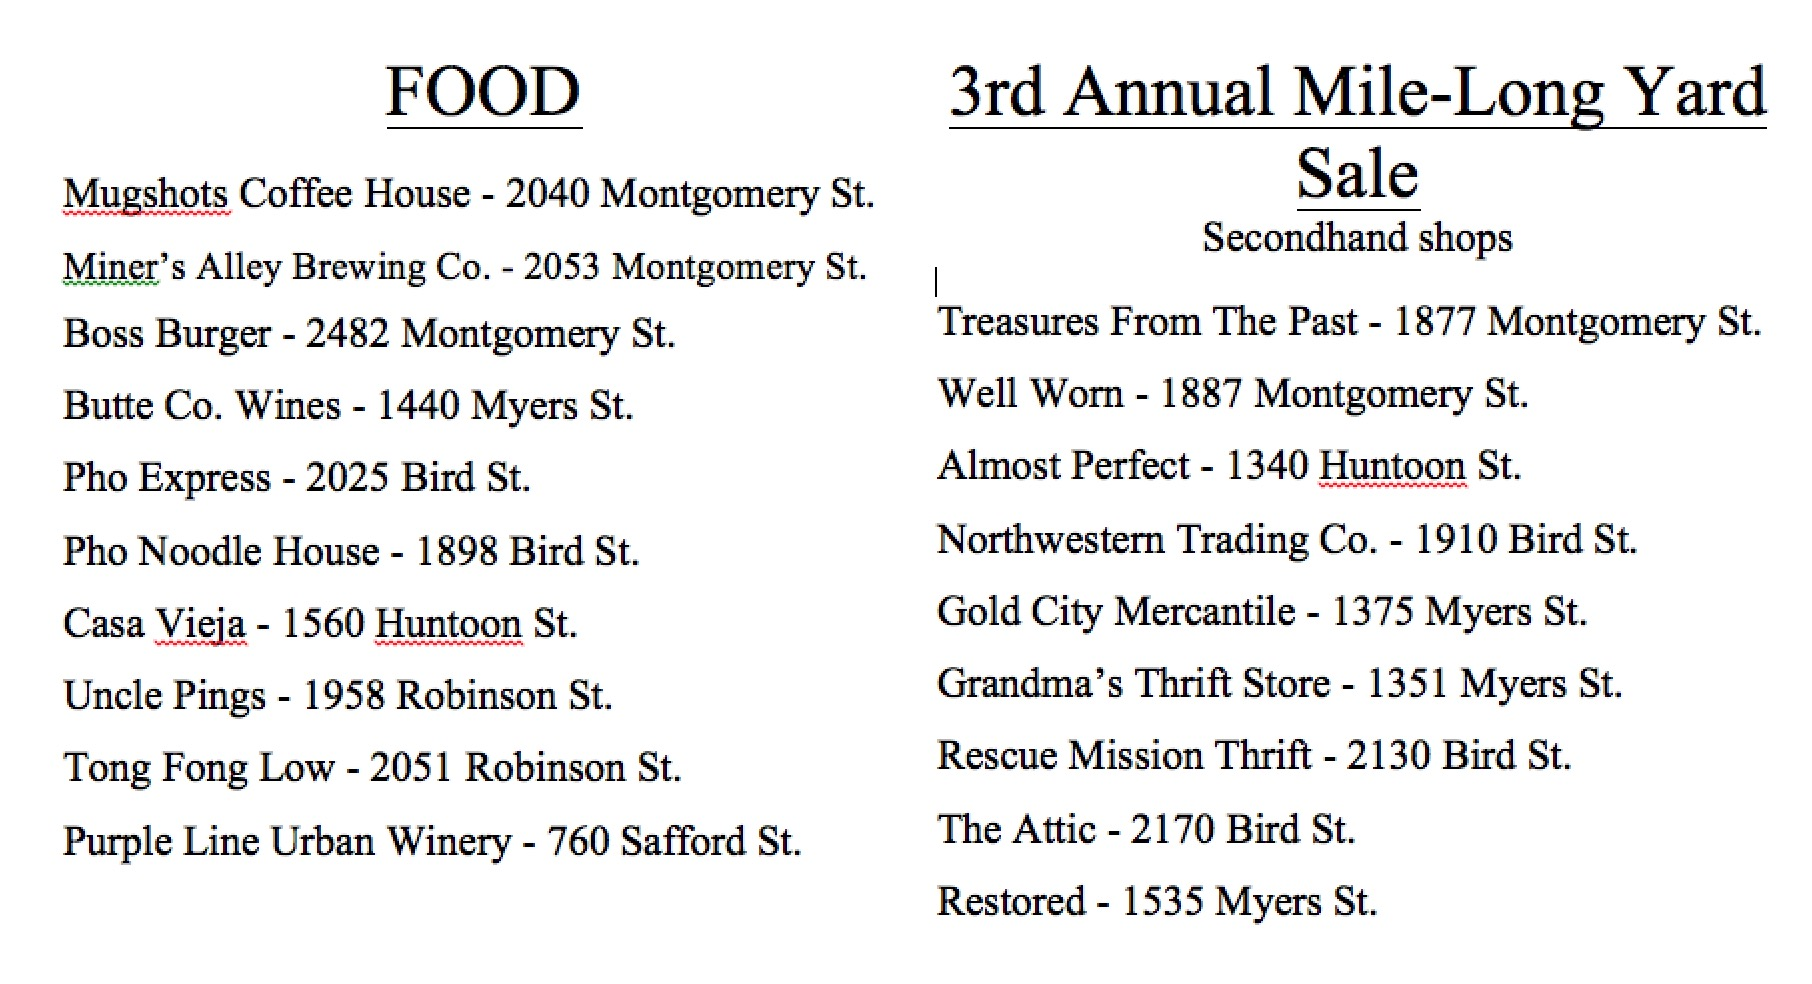 The Mile-Long Yard Sale will be on Montgomery St. from 2110 Salon and Spa to 5th and Montgomery St.  Listed above are some places you may like to try while you're in downtown! From getting a cup of coffee before breakfast to sipping on a glass of wine by dinner, Downtown Oroville has everything to offer. While you're shopping in the Yard Sale, check out these awesome secondhand shops or the End-of-the-Summer deals in all of the shops throughout downtown!See you all there bright and early!